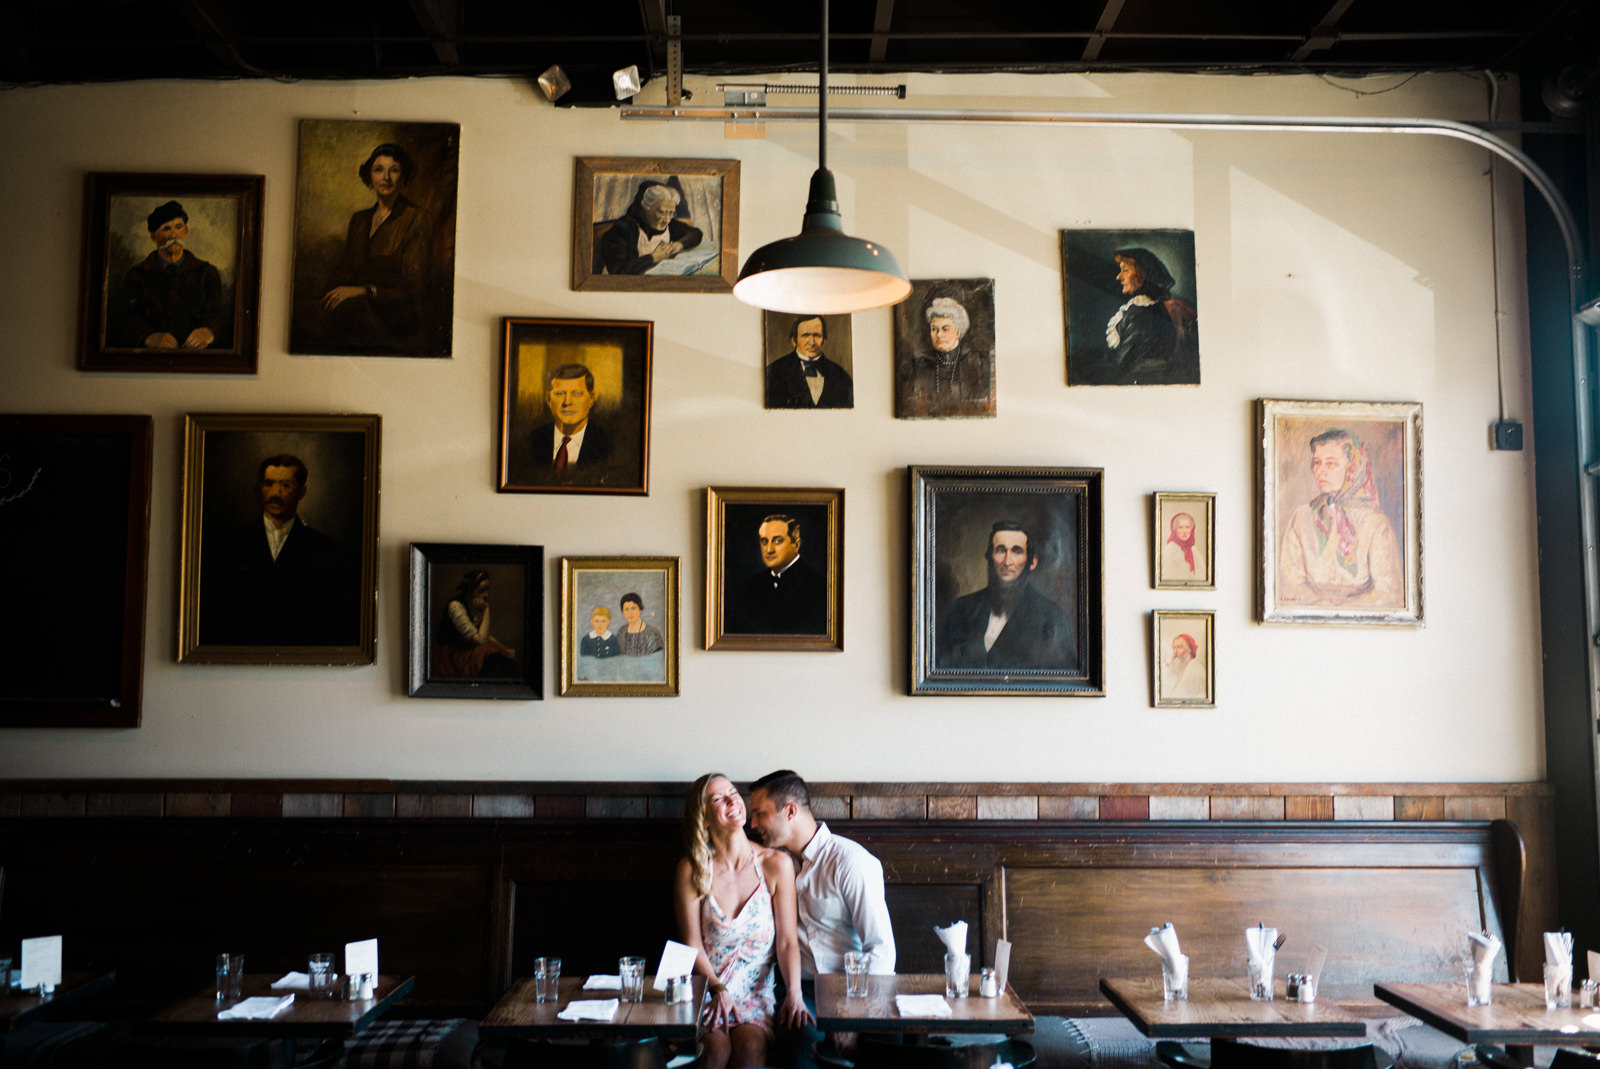 245-hip-indoor-engagement-session-in-seattle-with-paintings-on-wall-by-ryan-flynn.jpg